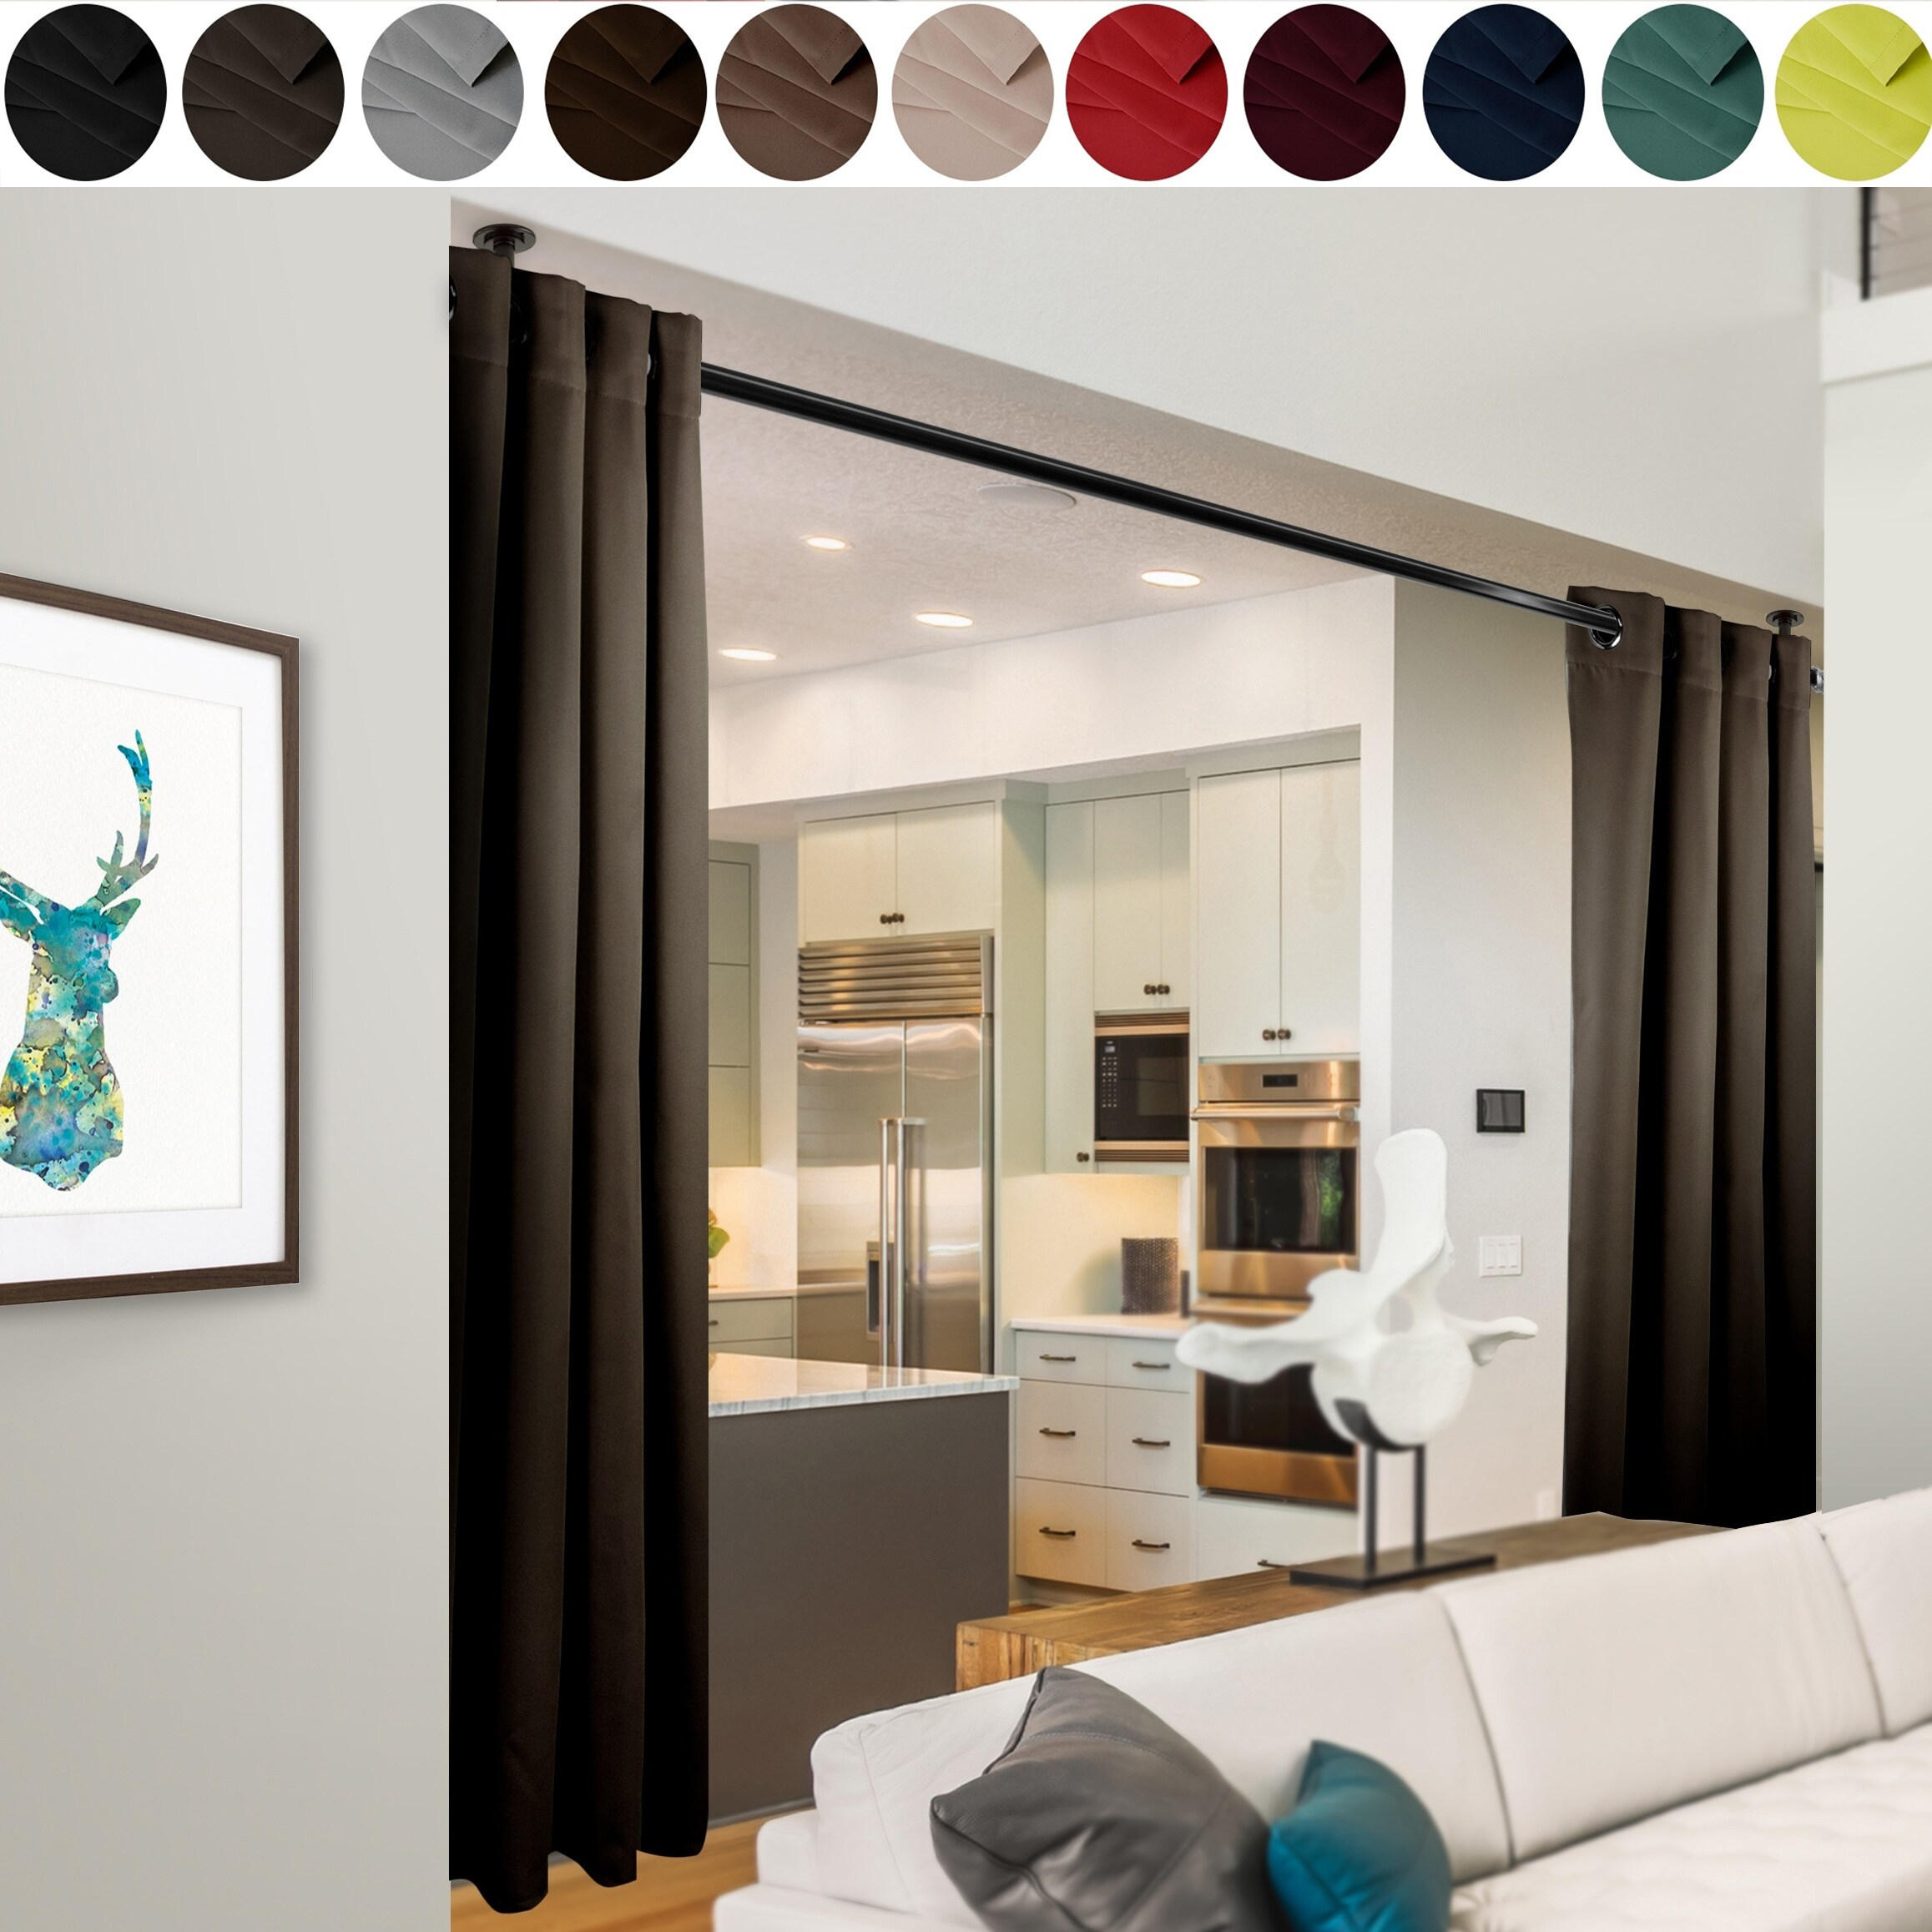 instyledesign 96 h room divider curtain with grommet 1 panel